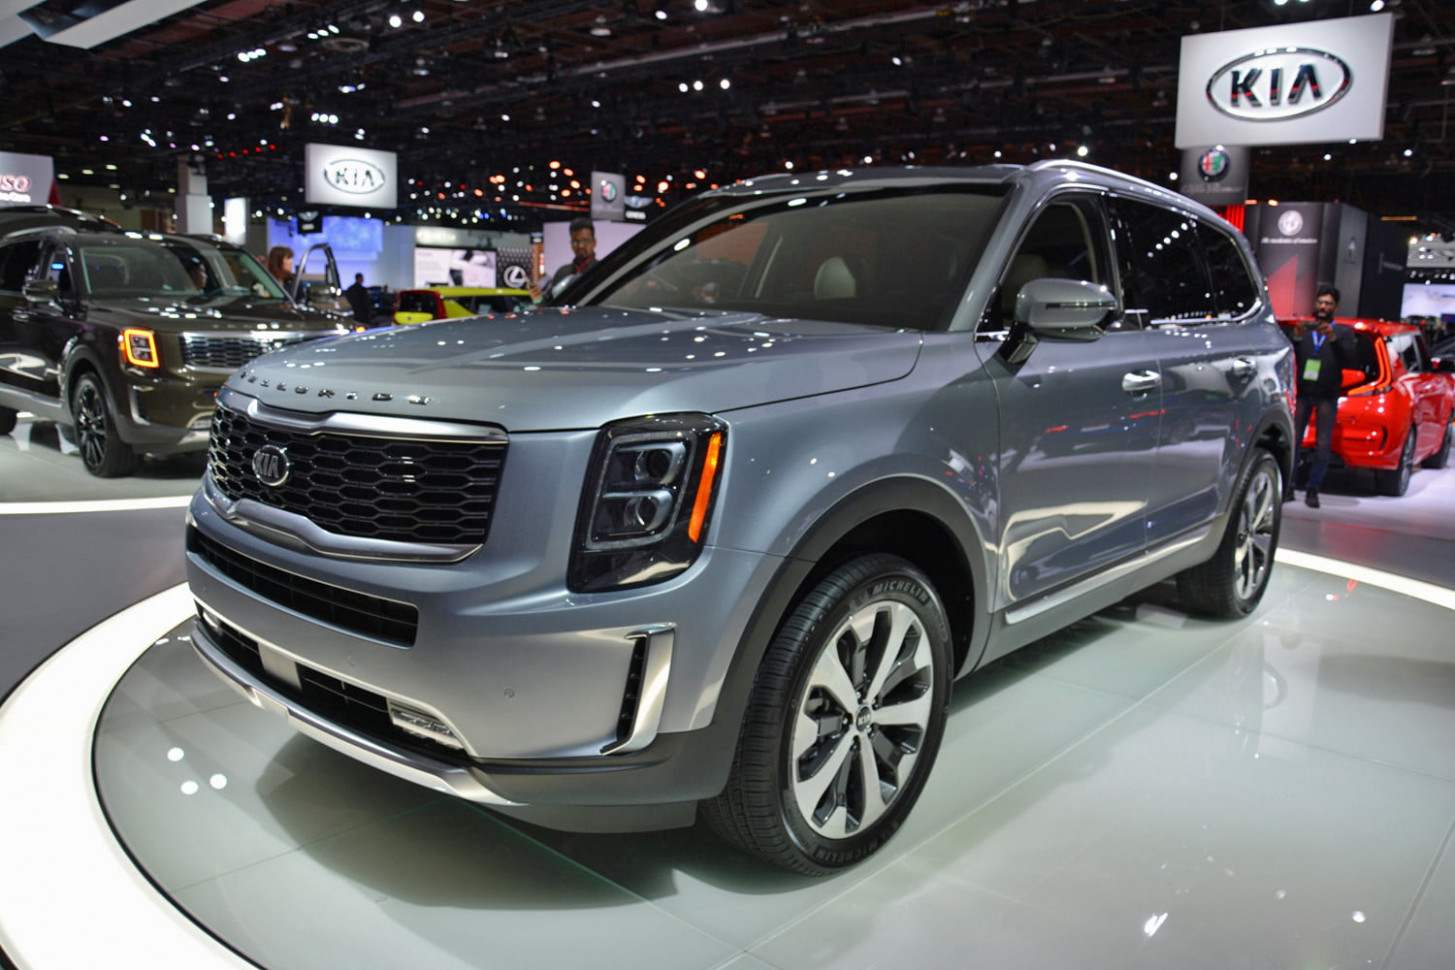 9 Kia Telluride SUV Unveiled at 9 Detroit Auto Show - 2020 kia big suv